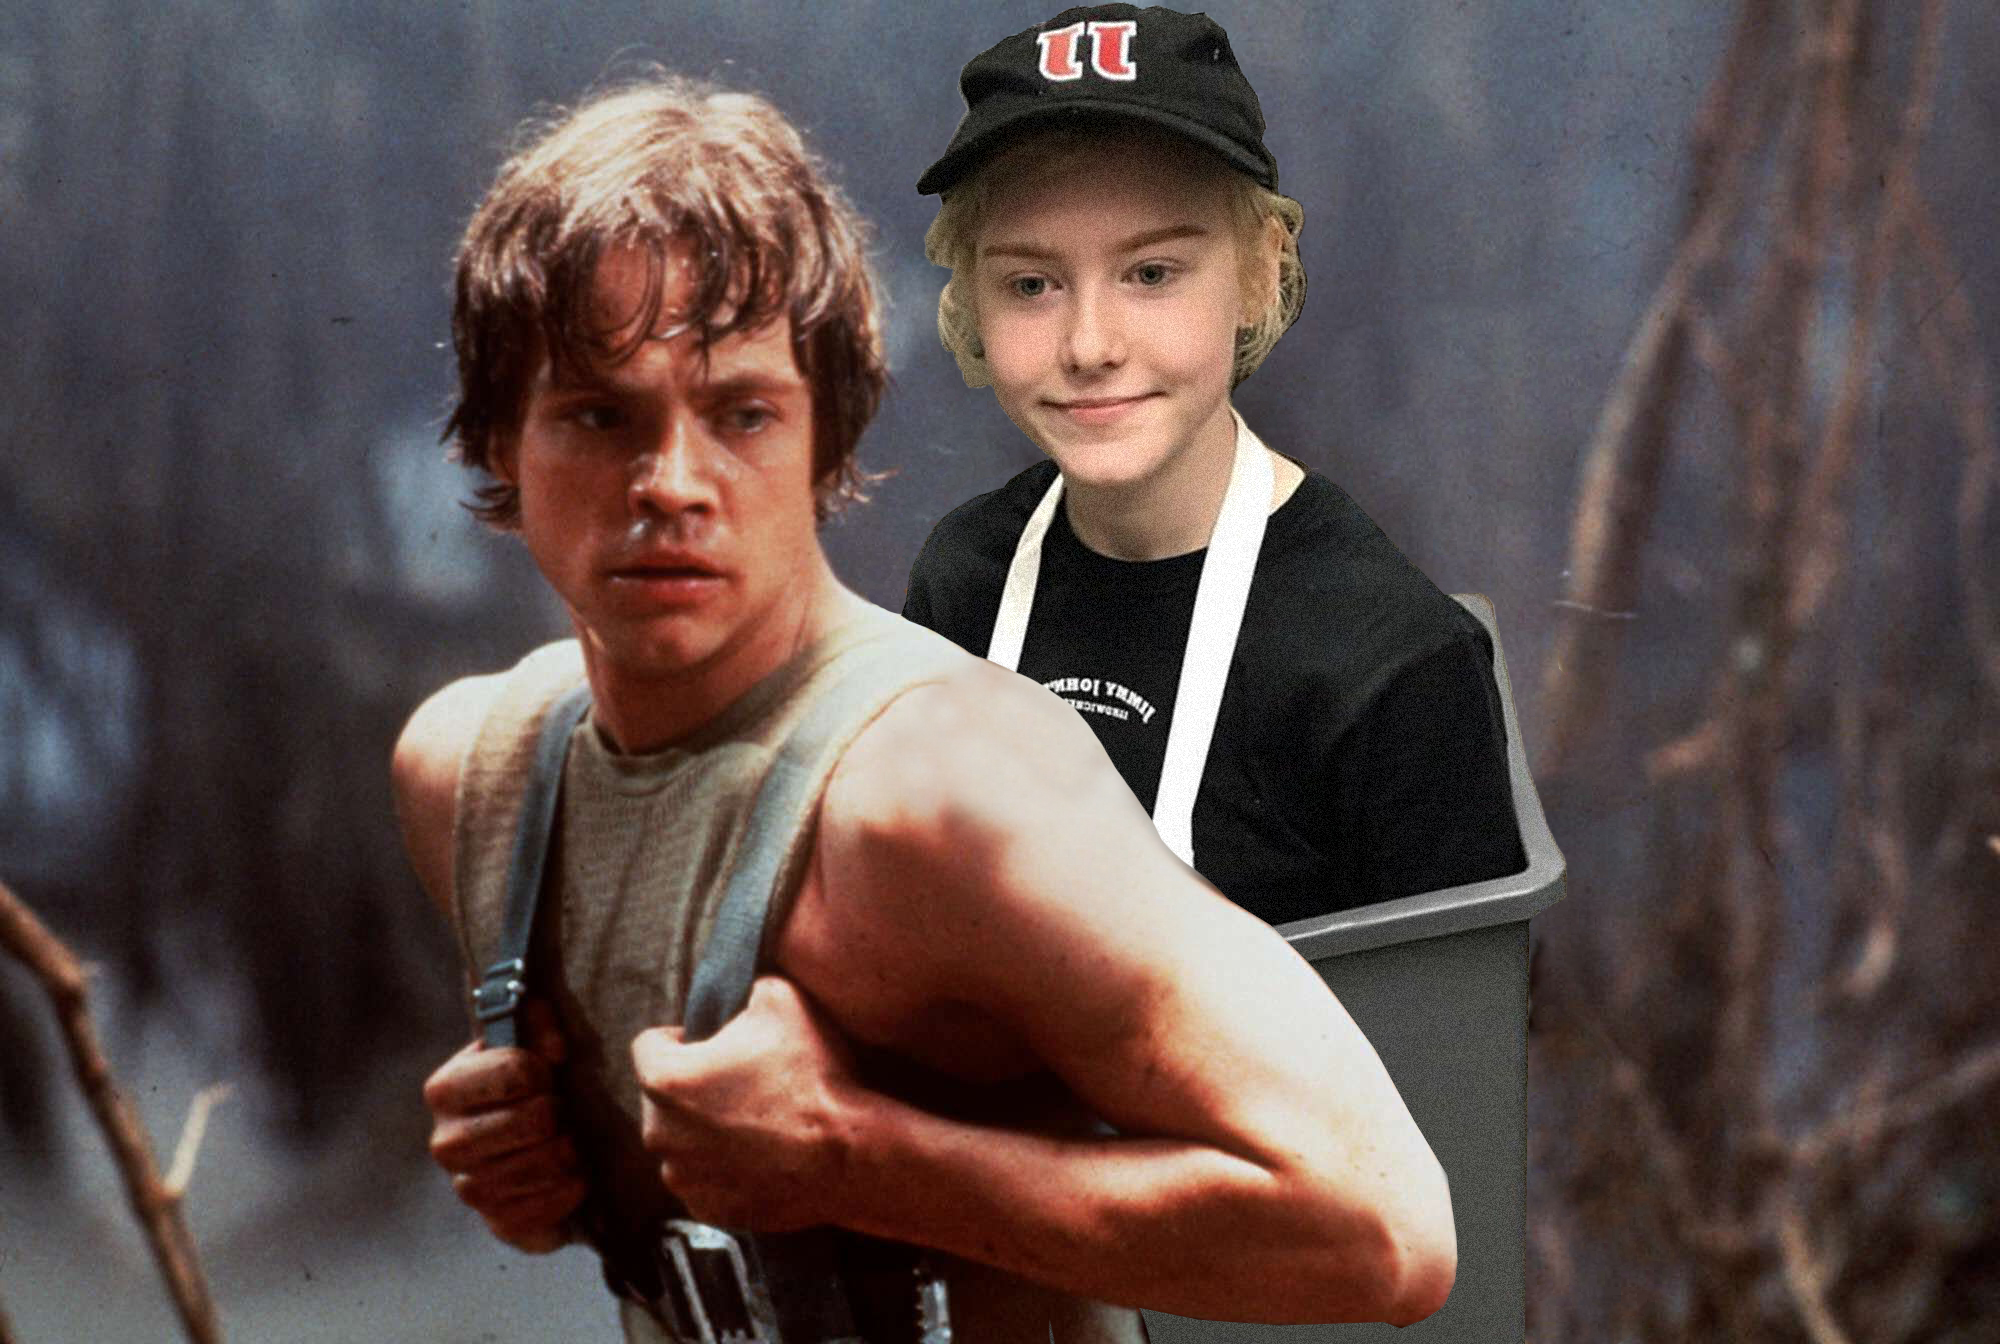 Here we find Luke training to be freaky fast.